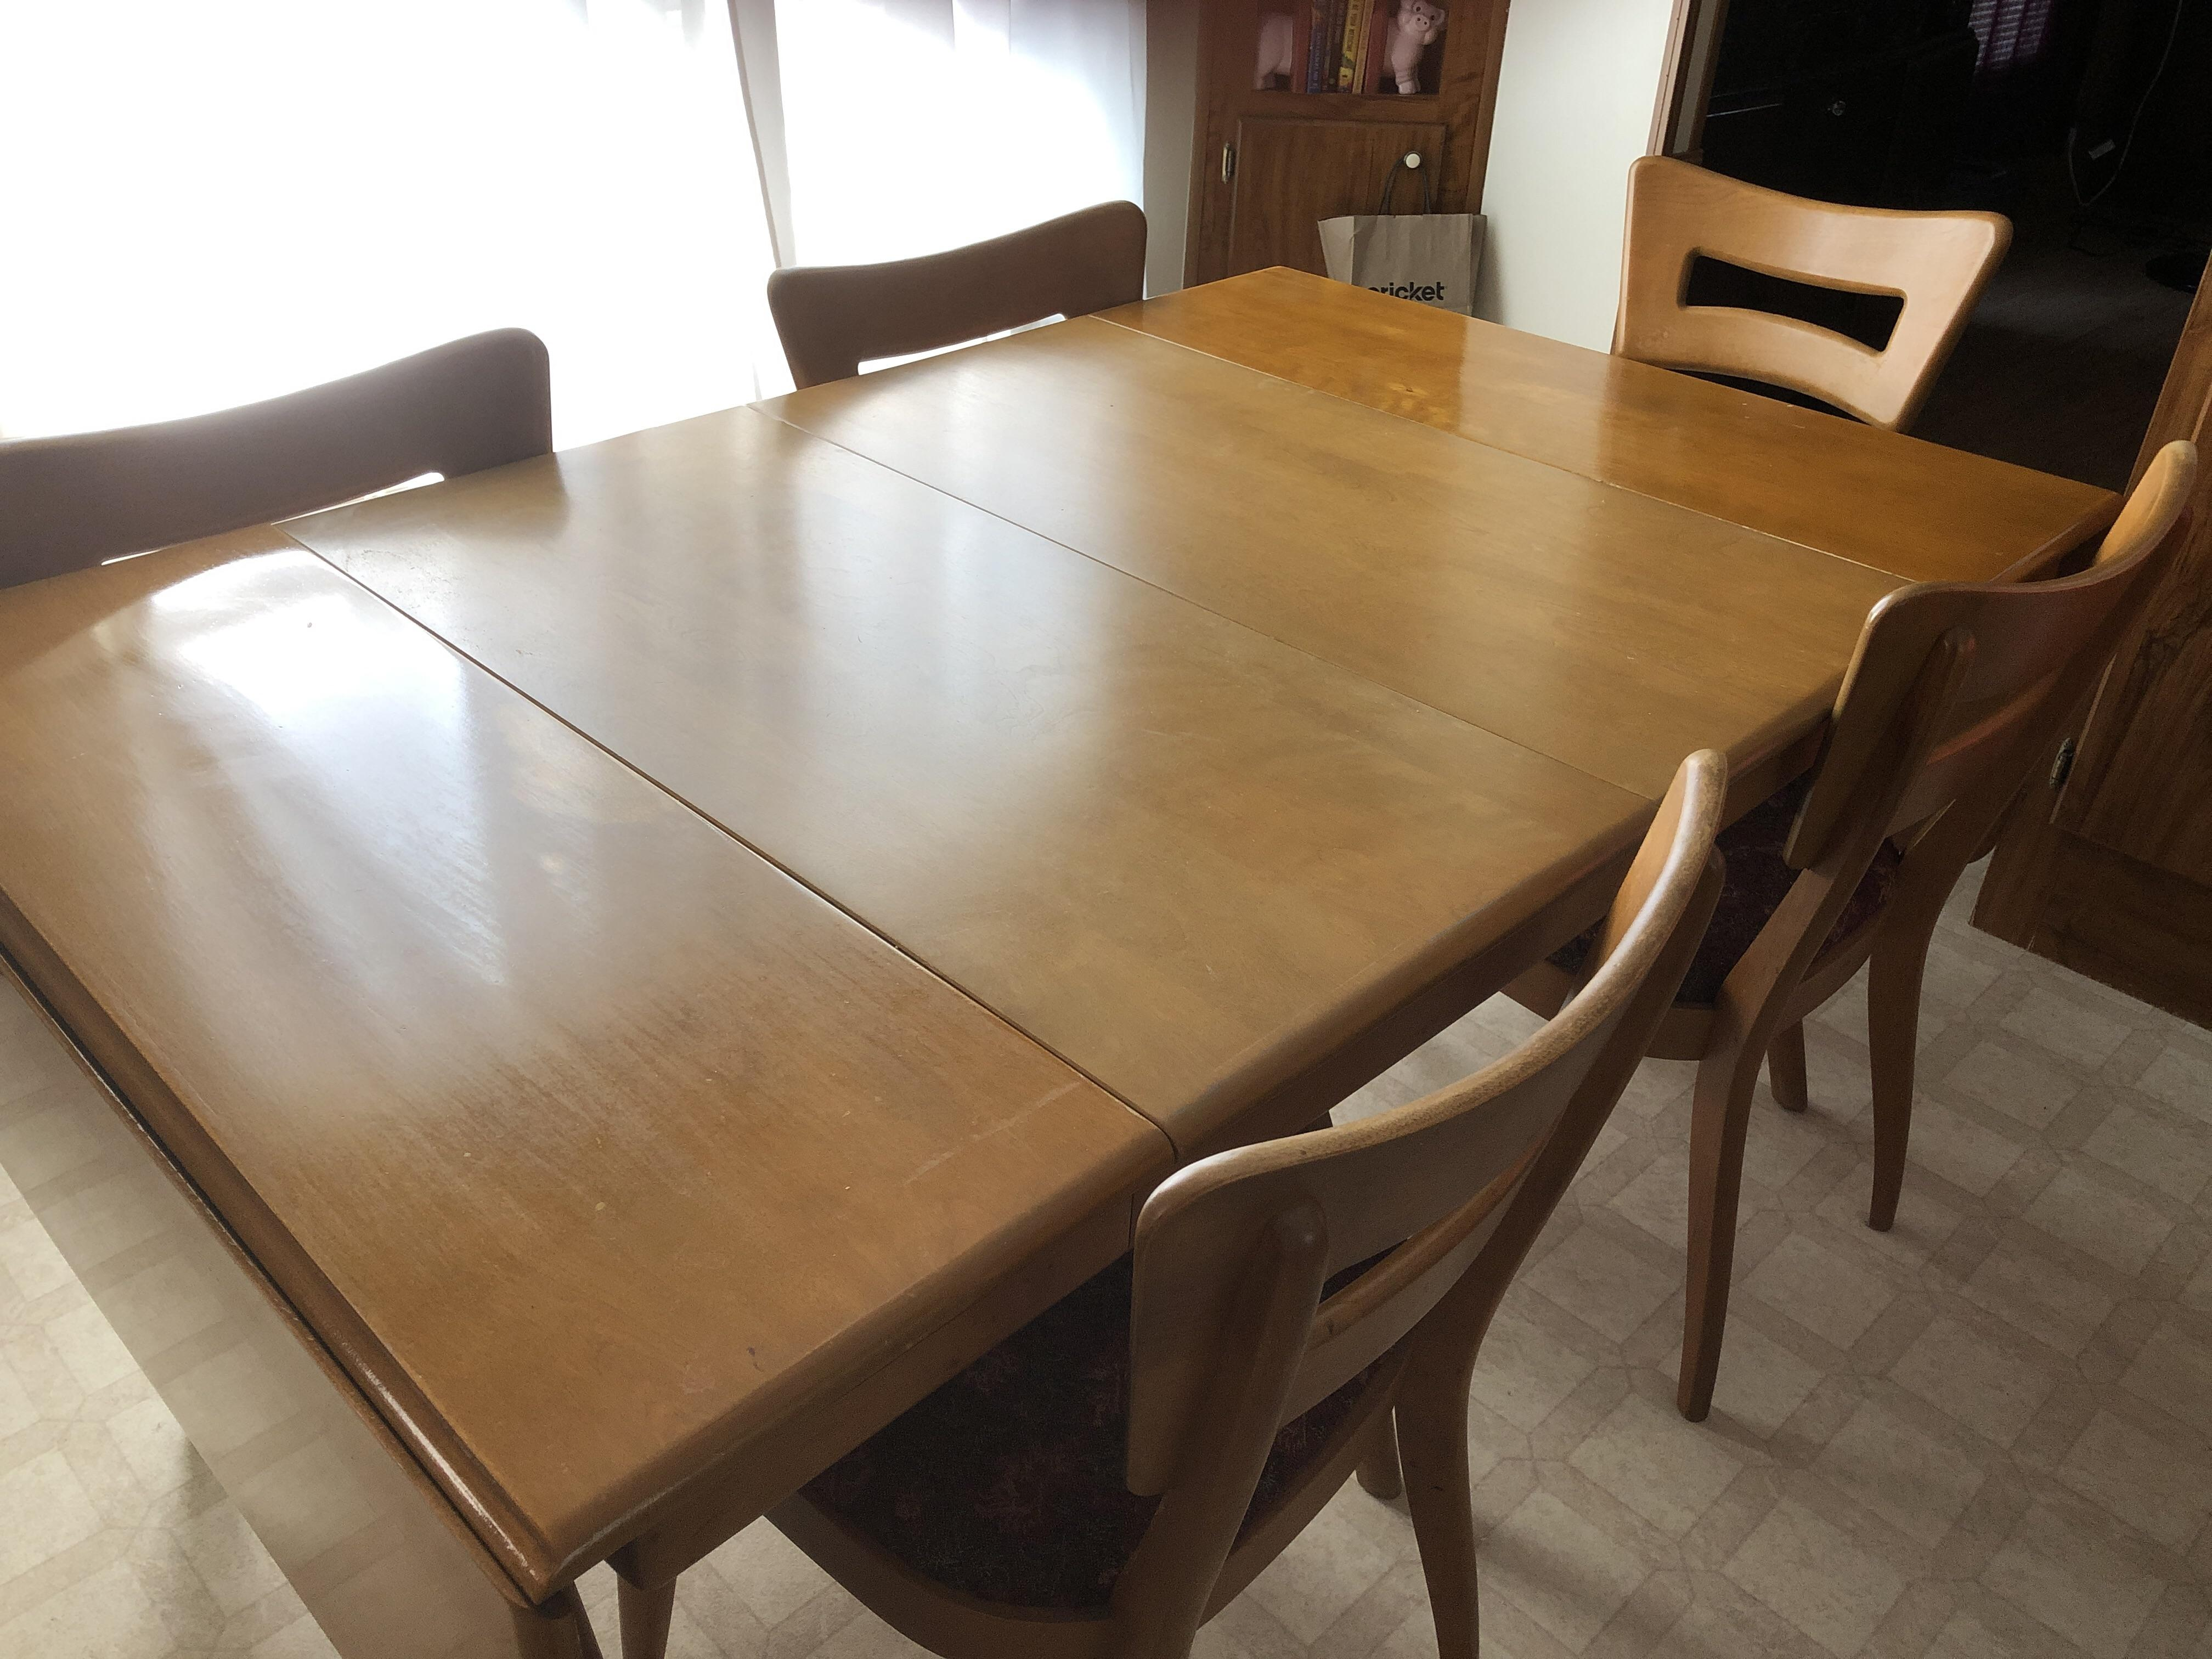 Heywood Wakefield Dining Chairs My Moms Heywood Wakefield Dining Table Set Mid Century